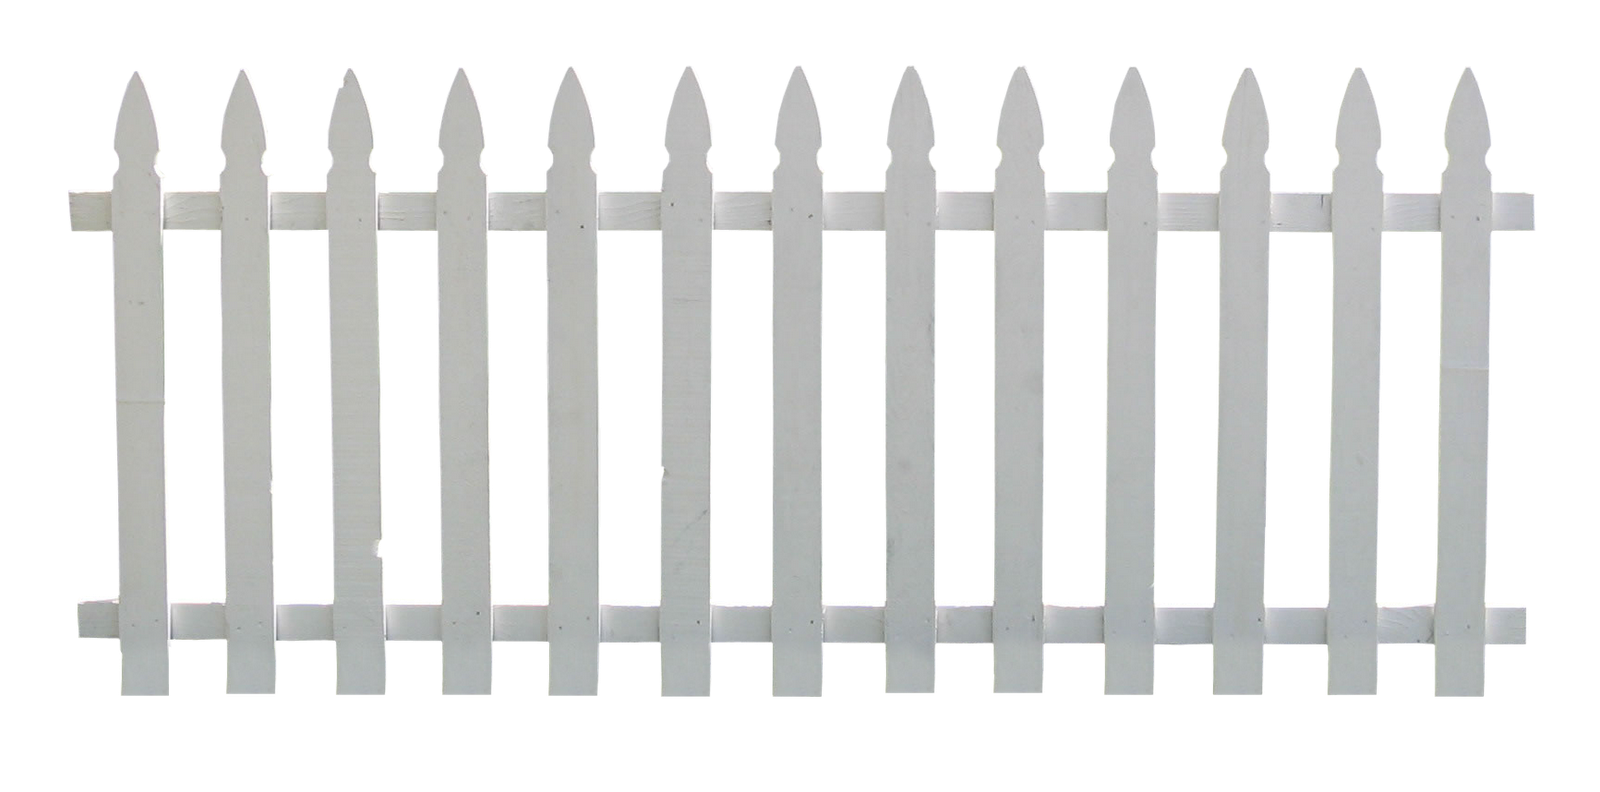 Picket fence png hd. Gate clipart transparent background